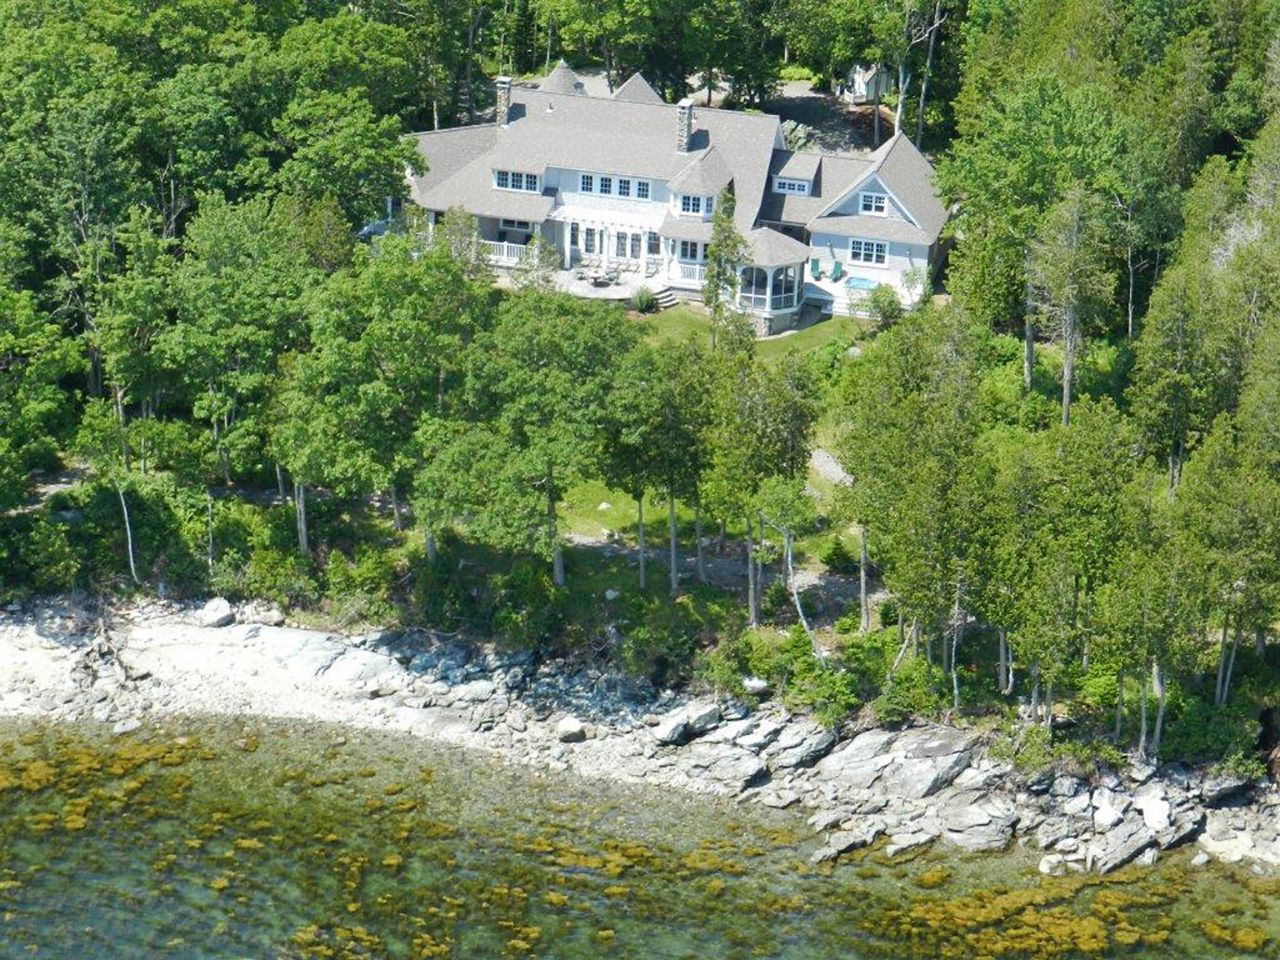 Casa Unifamiliar por un Venta en Stone's Throw 32 Seaspray Lane Brooklin, Maine,04616 Estados Unidos